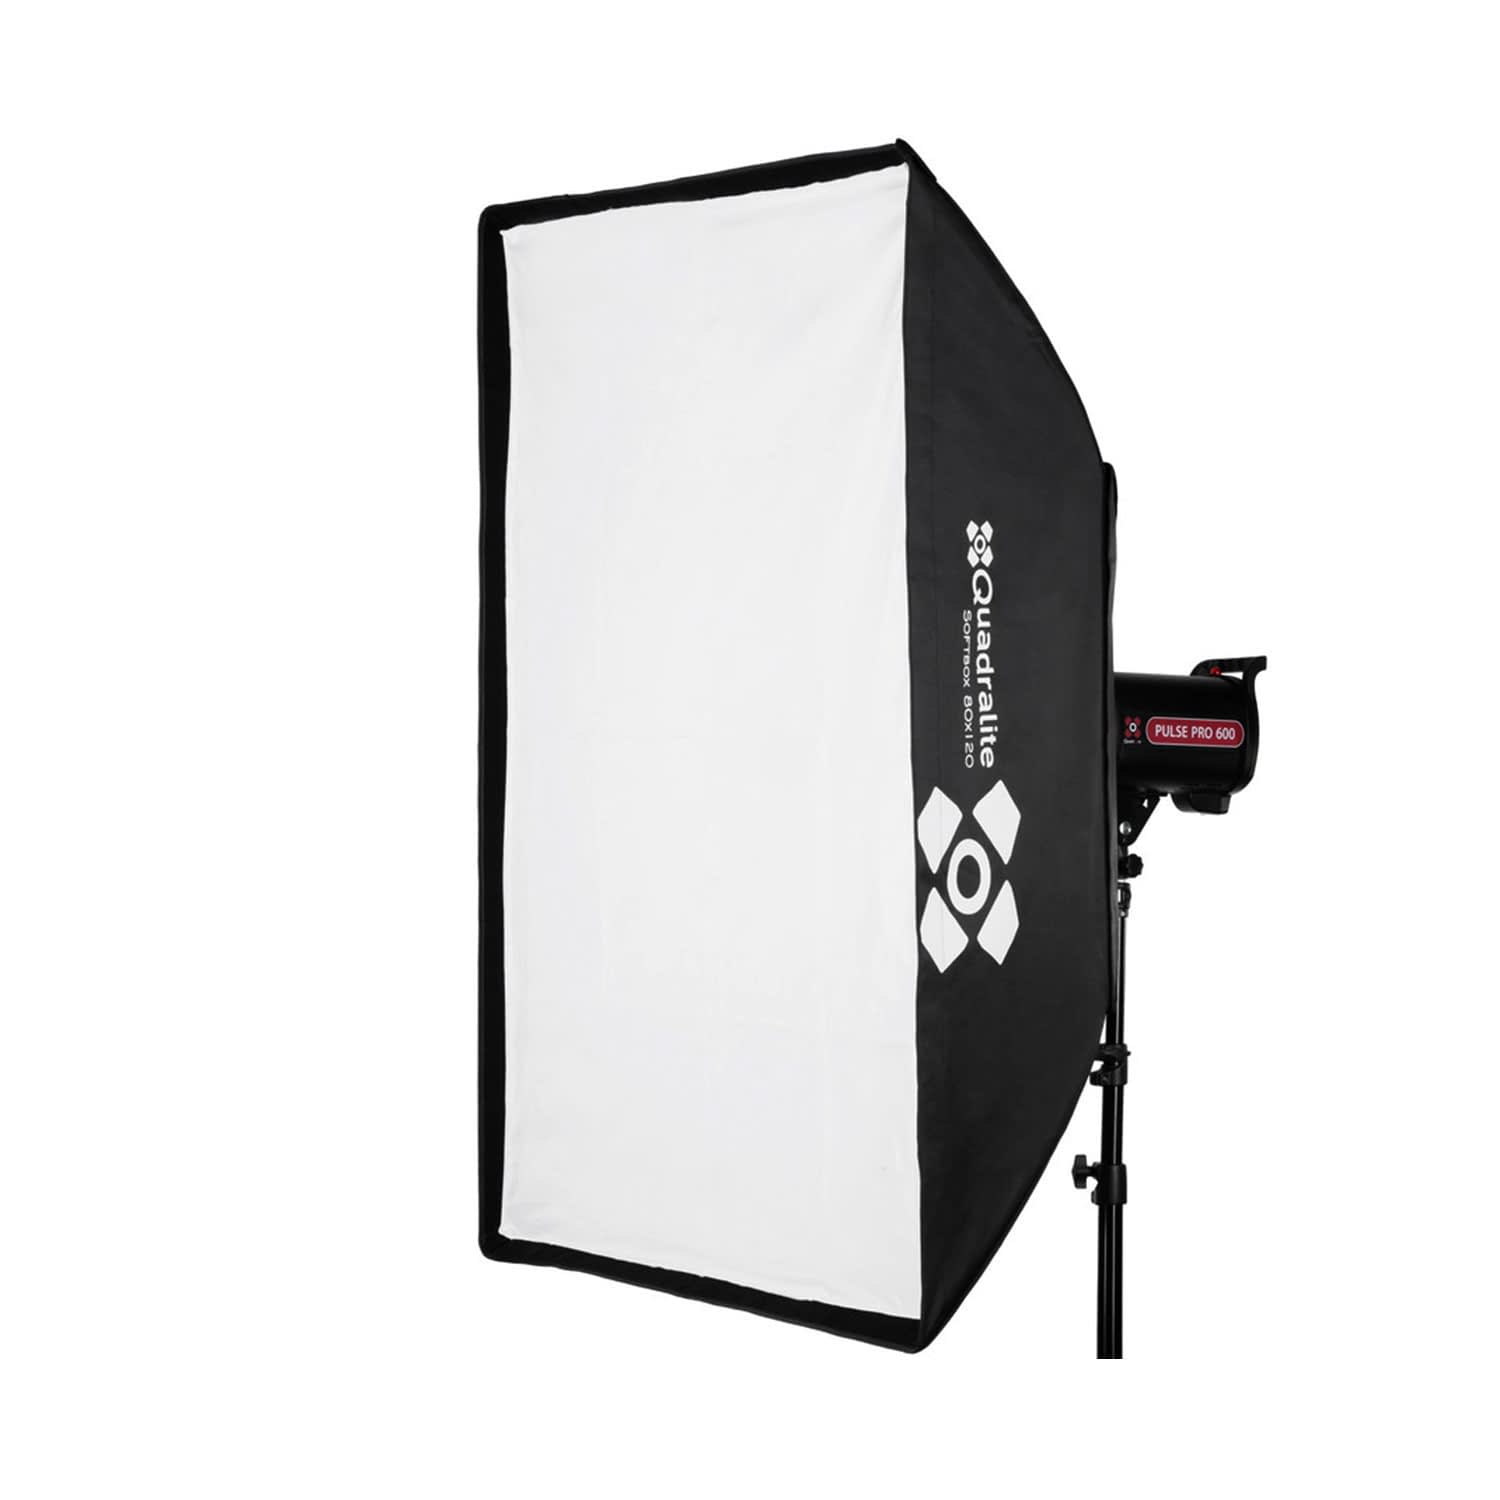 120x80cm Quadralite Softbox